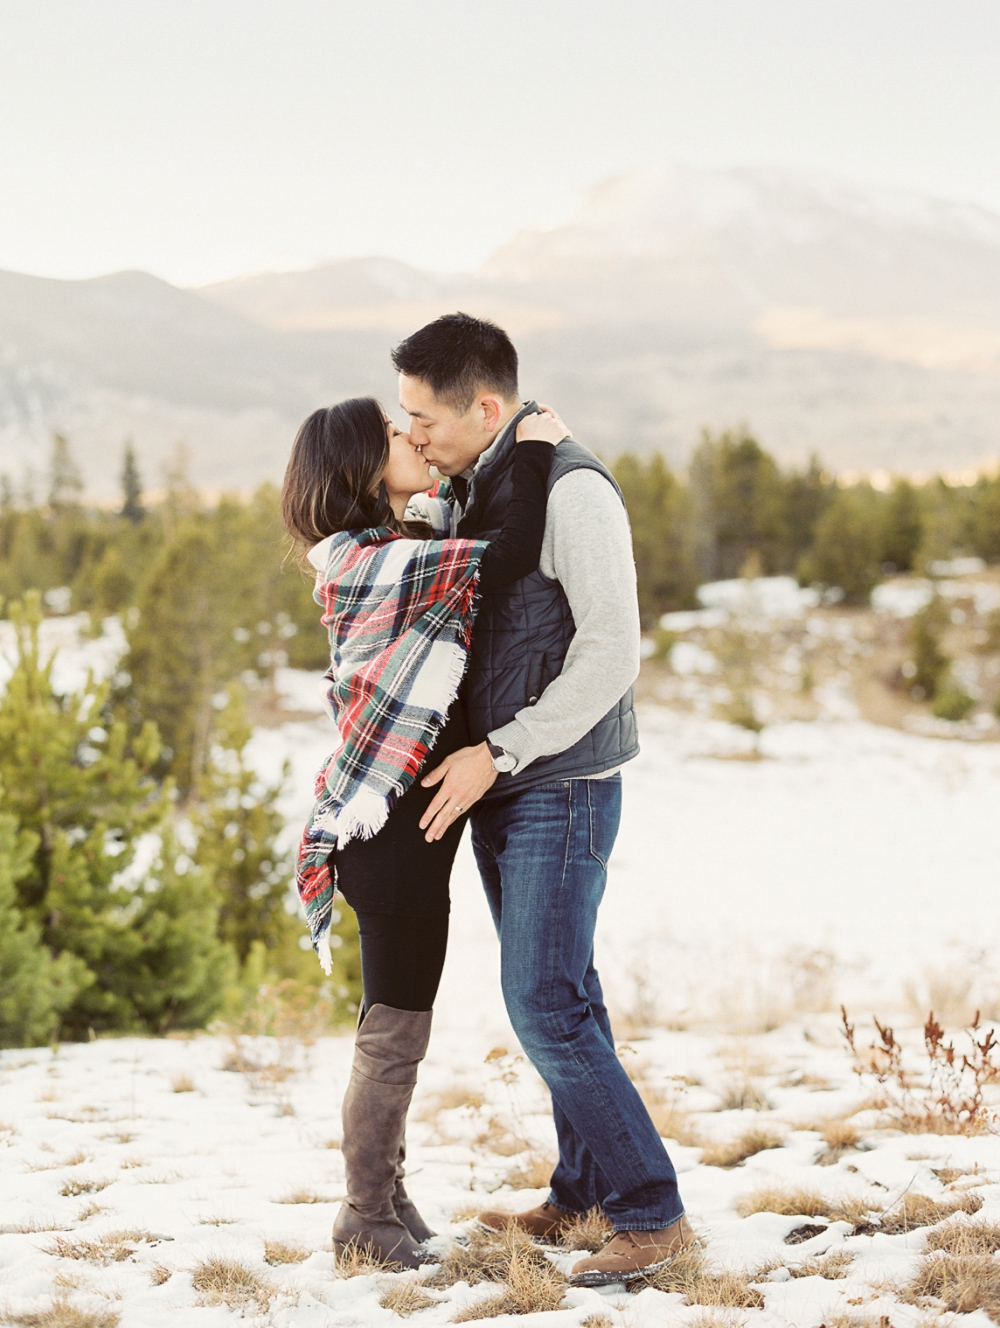 Dani-Cowan-Photography-Snowy-Colorado-Mountain-Maternity-Photoshoot31_WEB